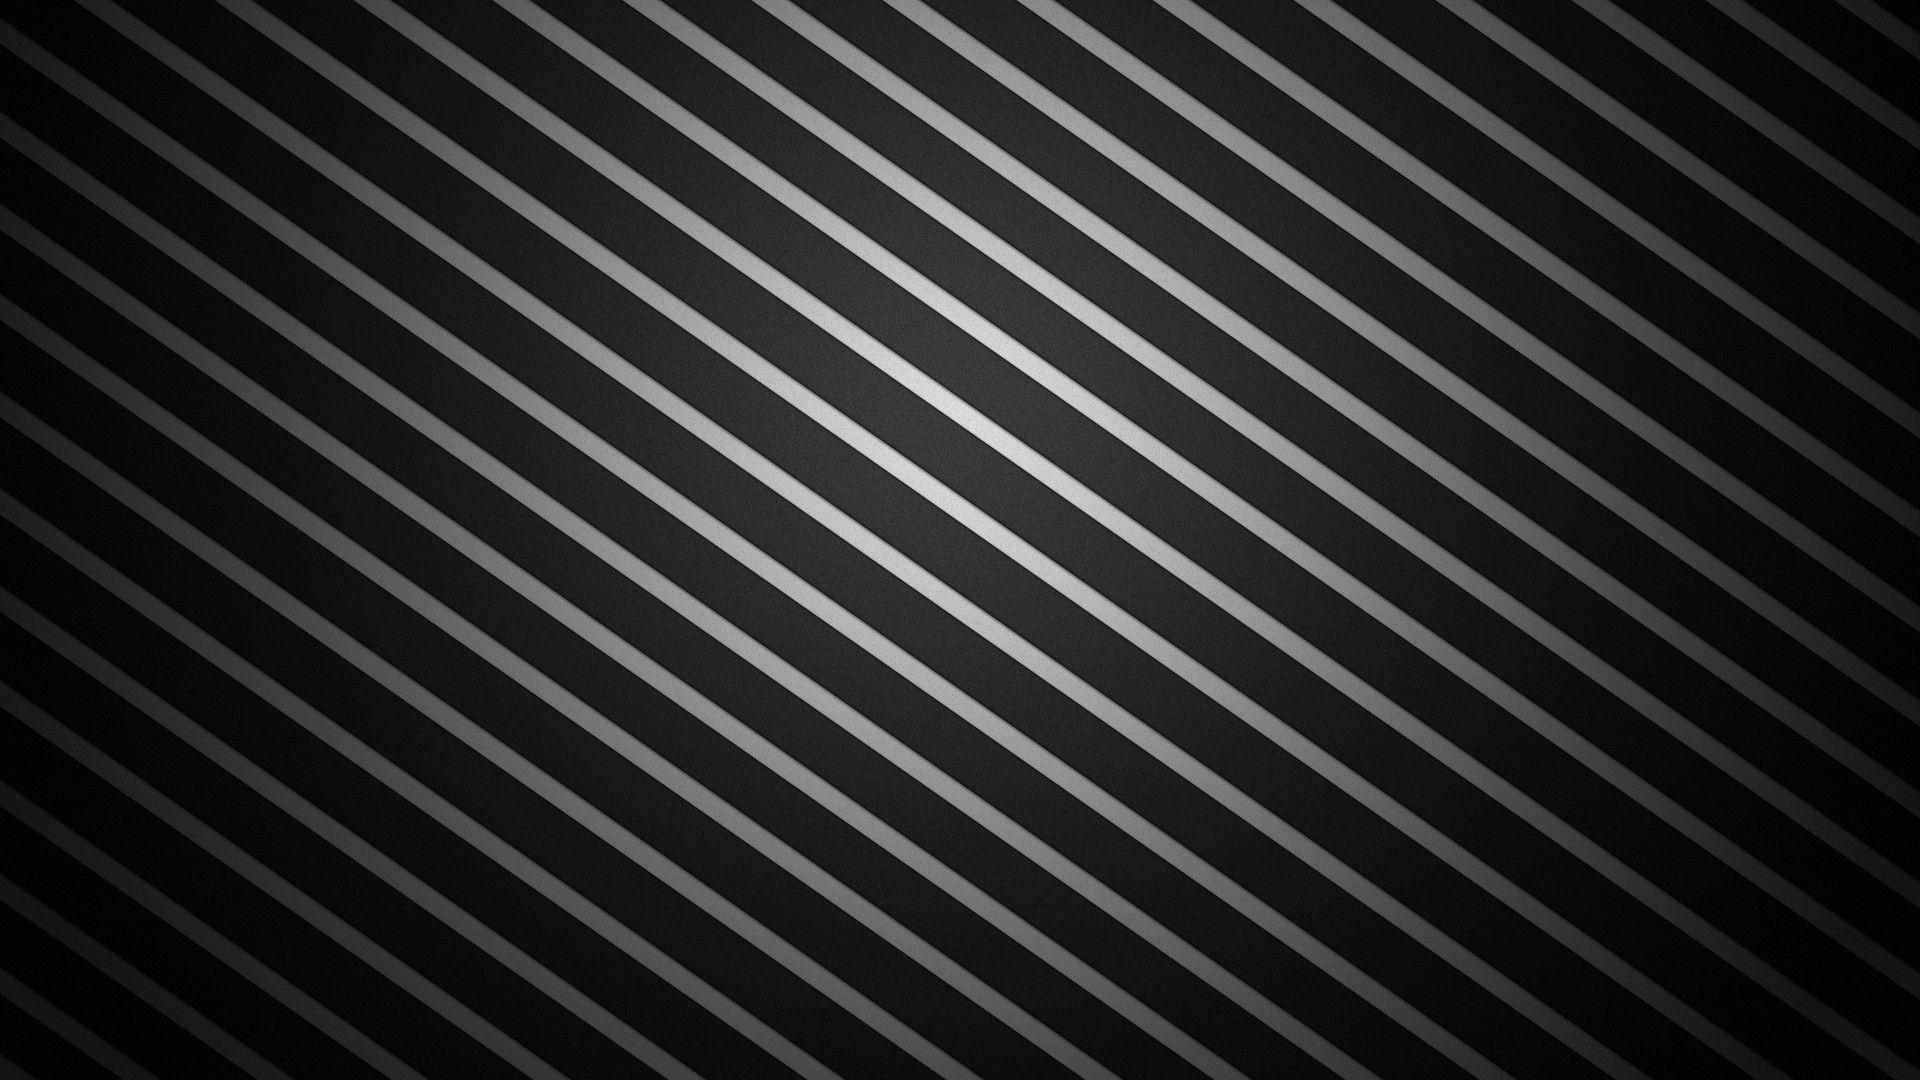 All Black Backgrounds - Wallpaper Cave